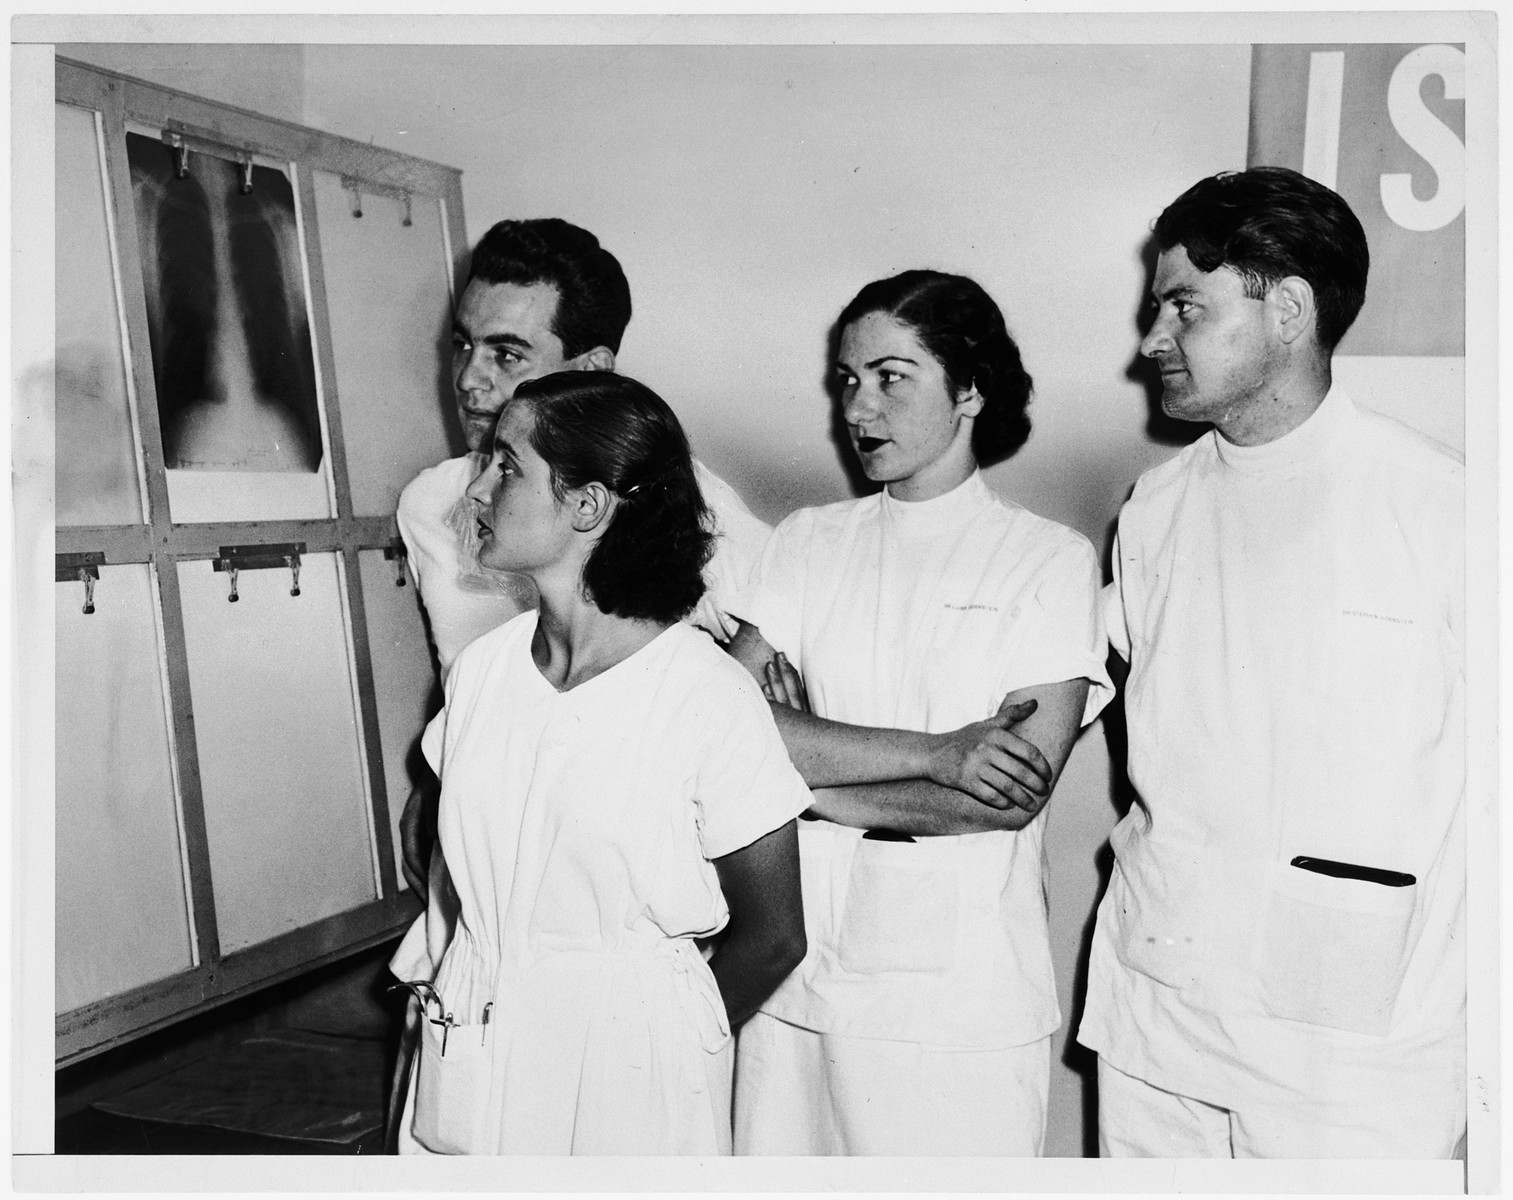 Four Jewish medical students study a lung x-ray.  From left to right are Paul Ornstein, his wife Anna Brunn Ornstein, Luisa Schwarzwald and Stephen Hornstein.